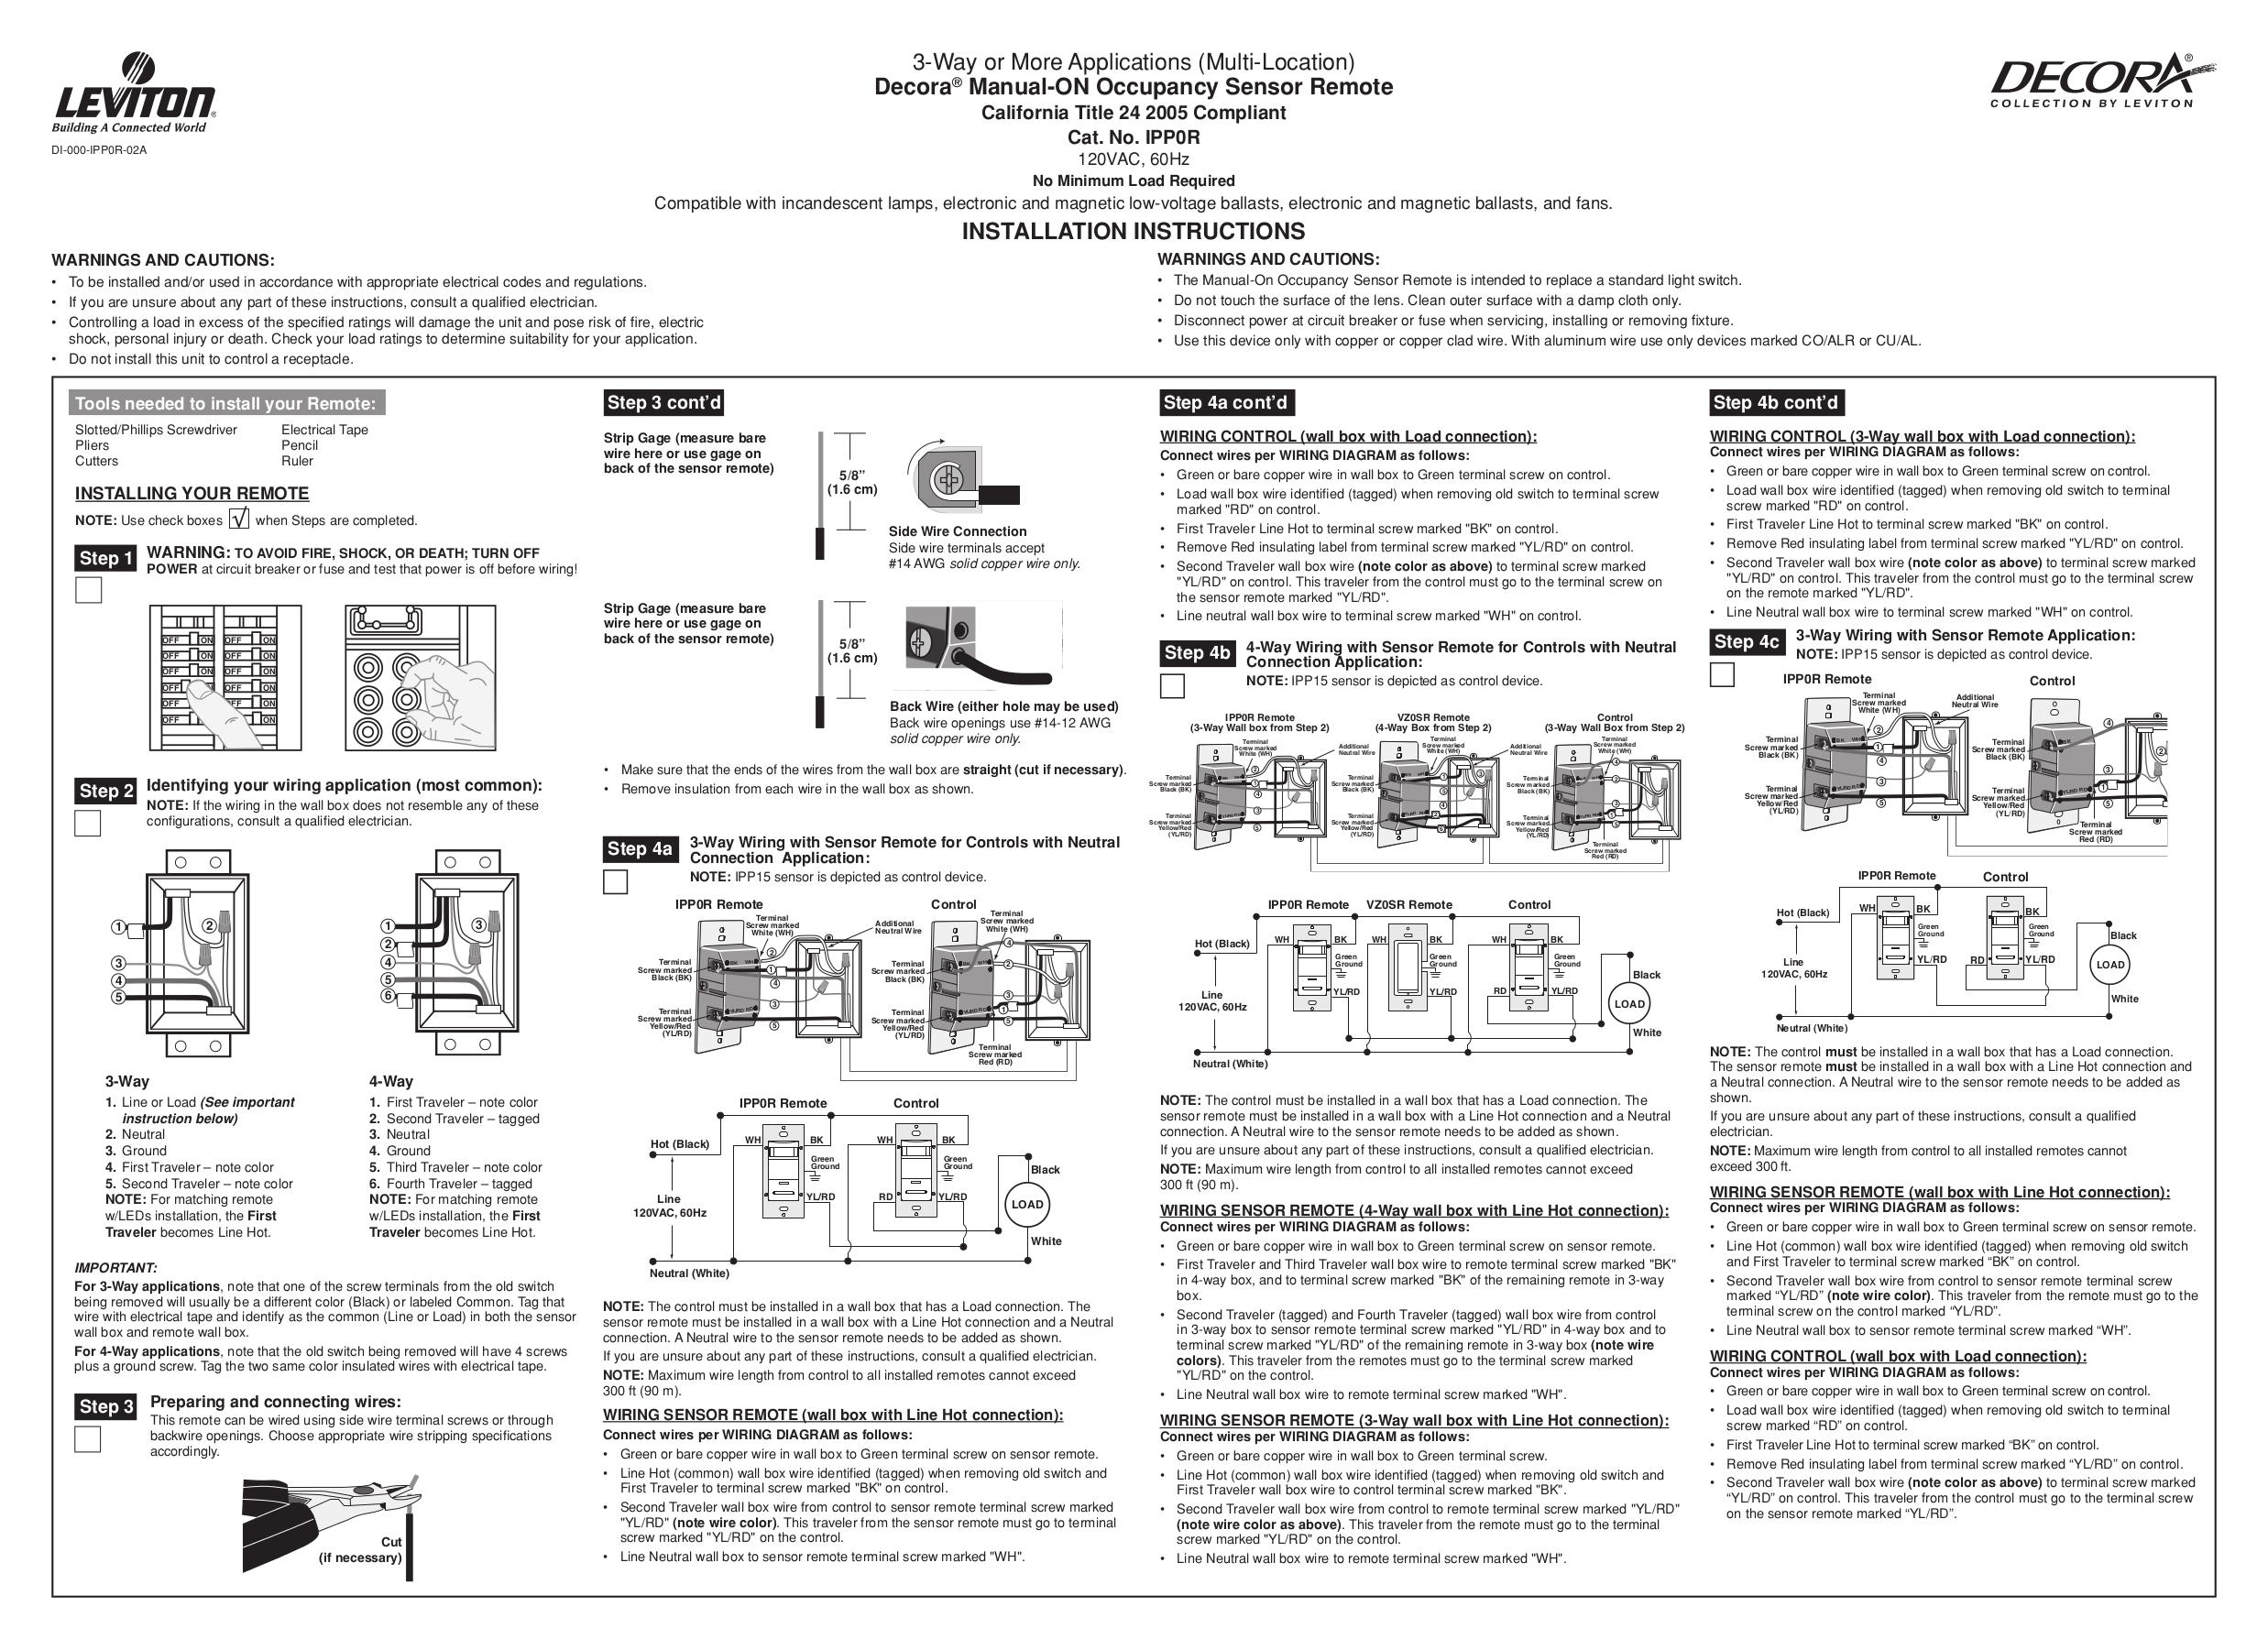 LVIPP0R1L_Guide.pdf 0 download free pdf for leviton vz0sr 1l device remotes other manual leviton occupancy sensor wiring diagram at sewacar.co